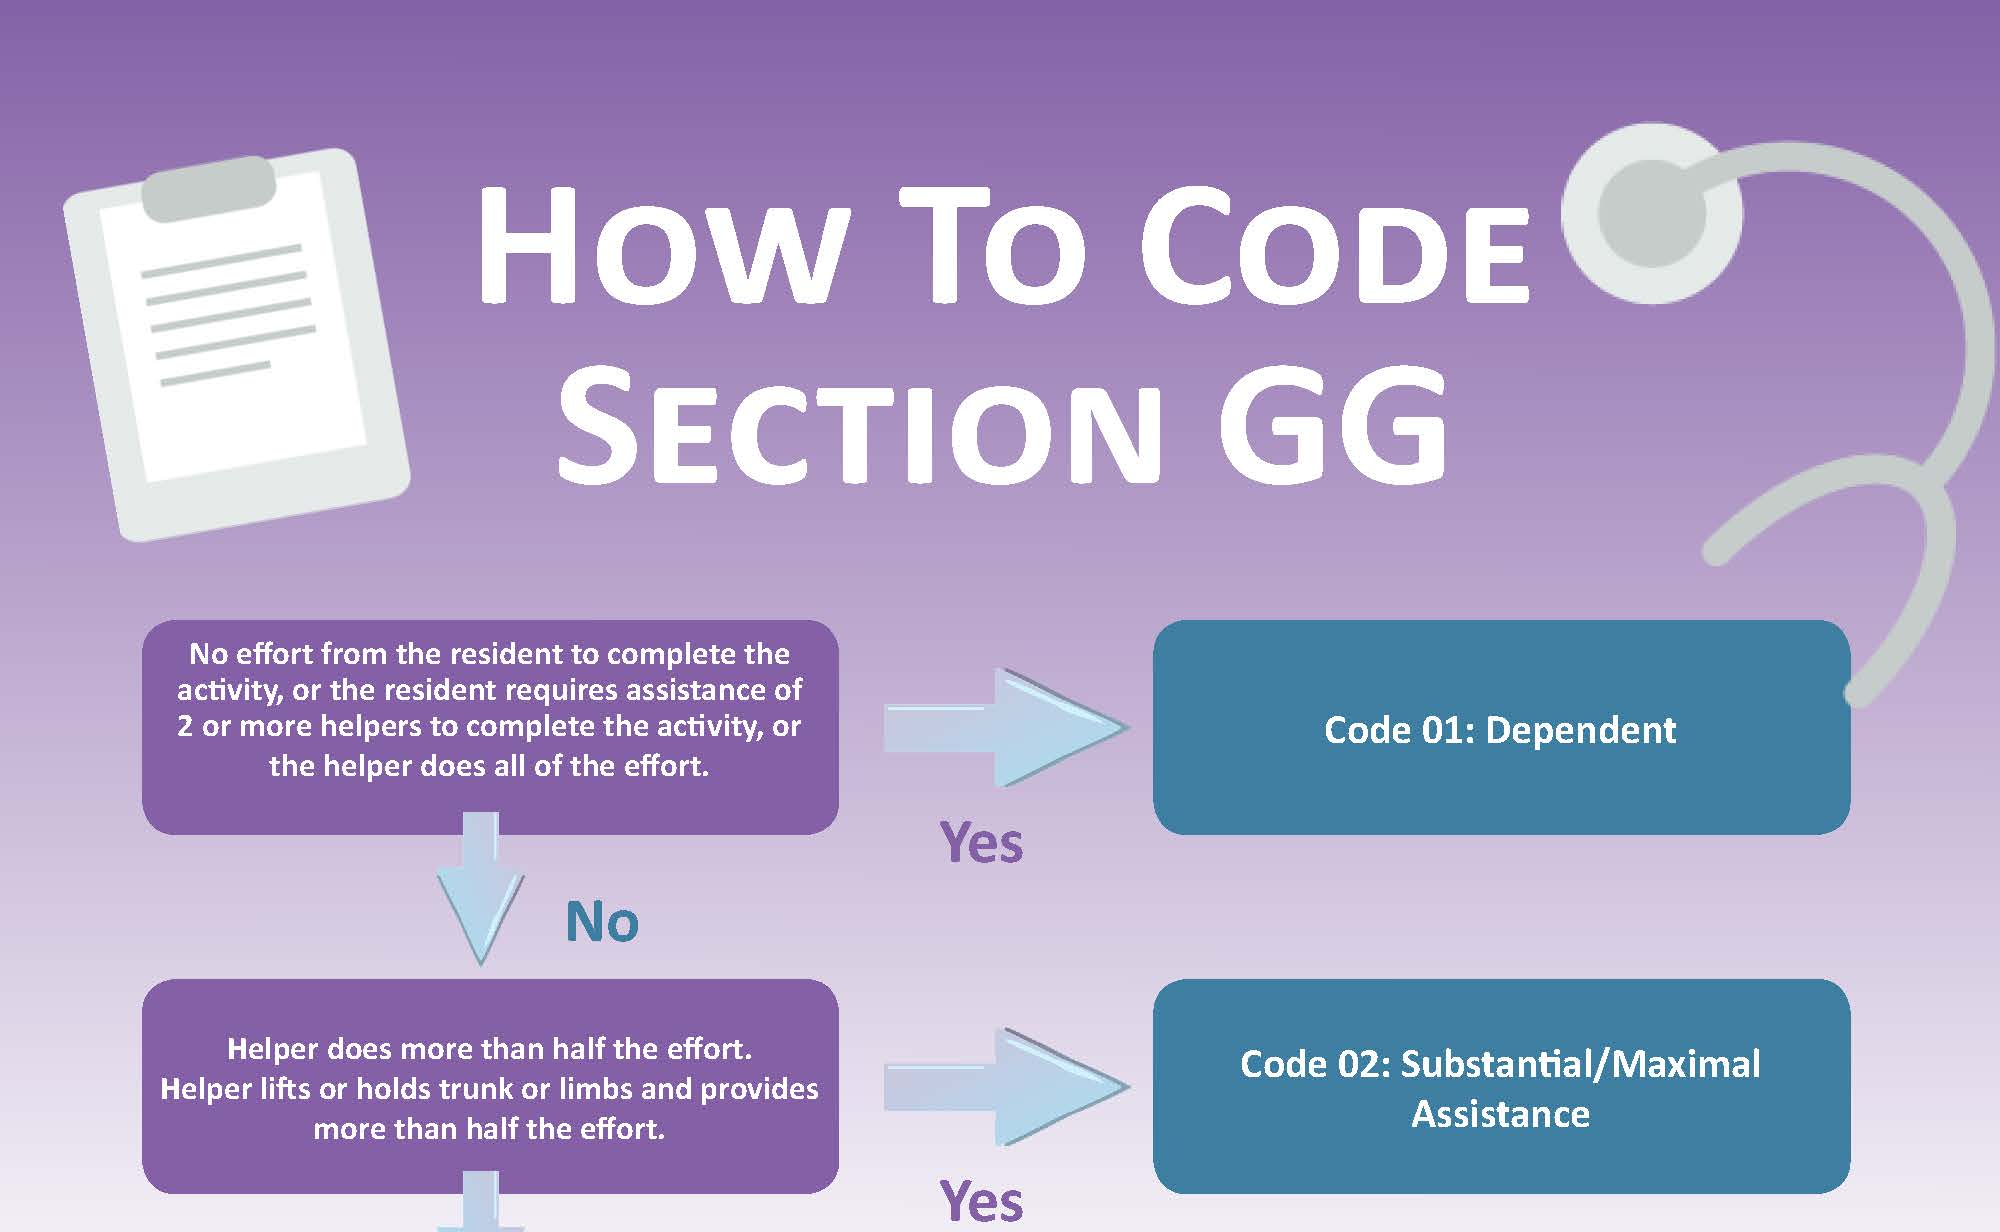 Section GG